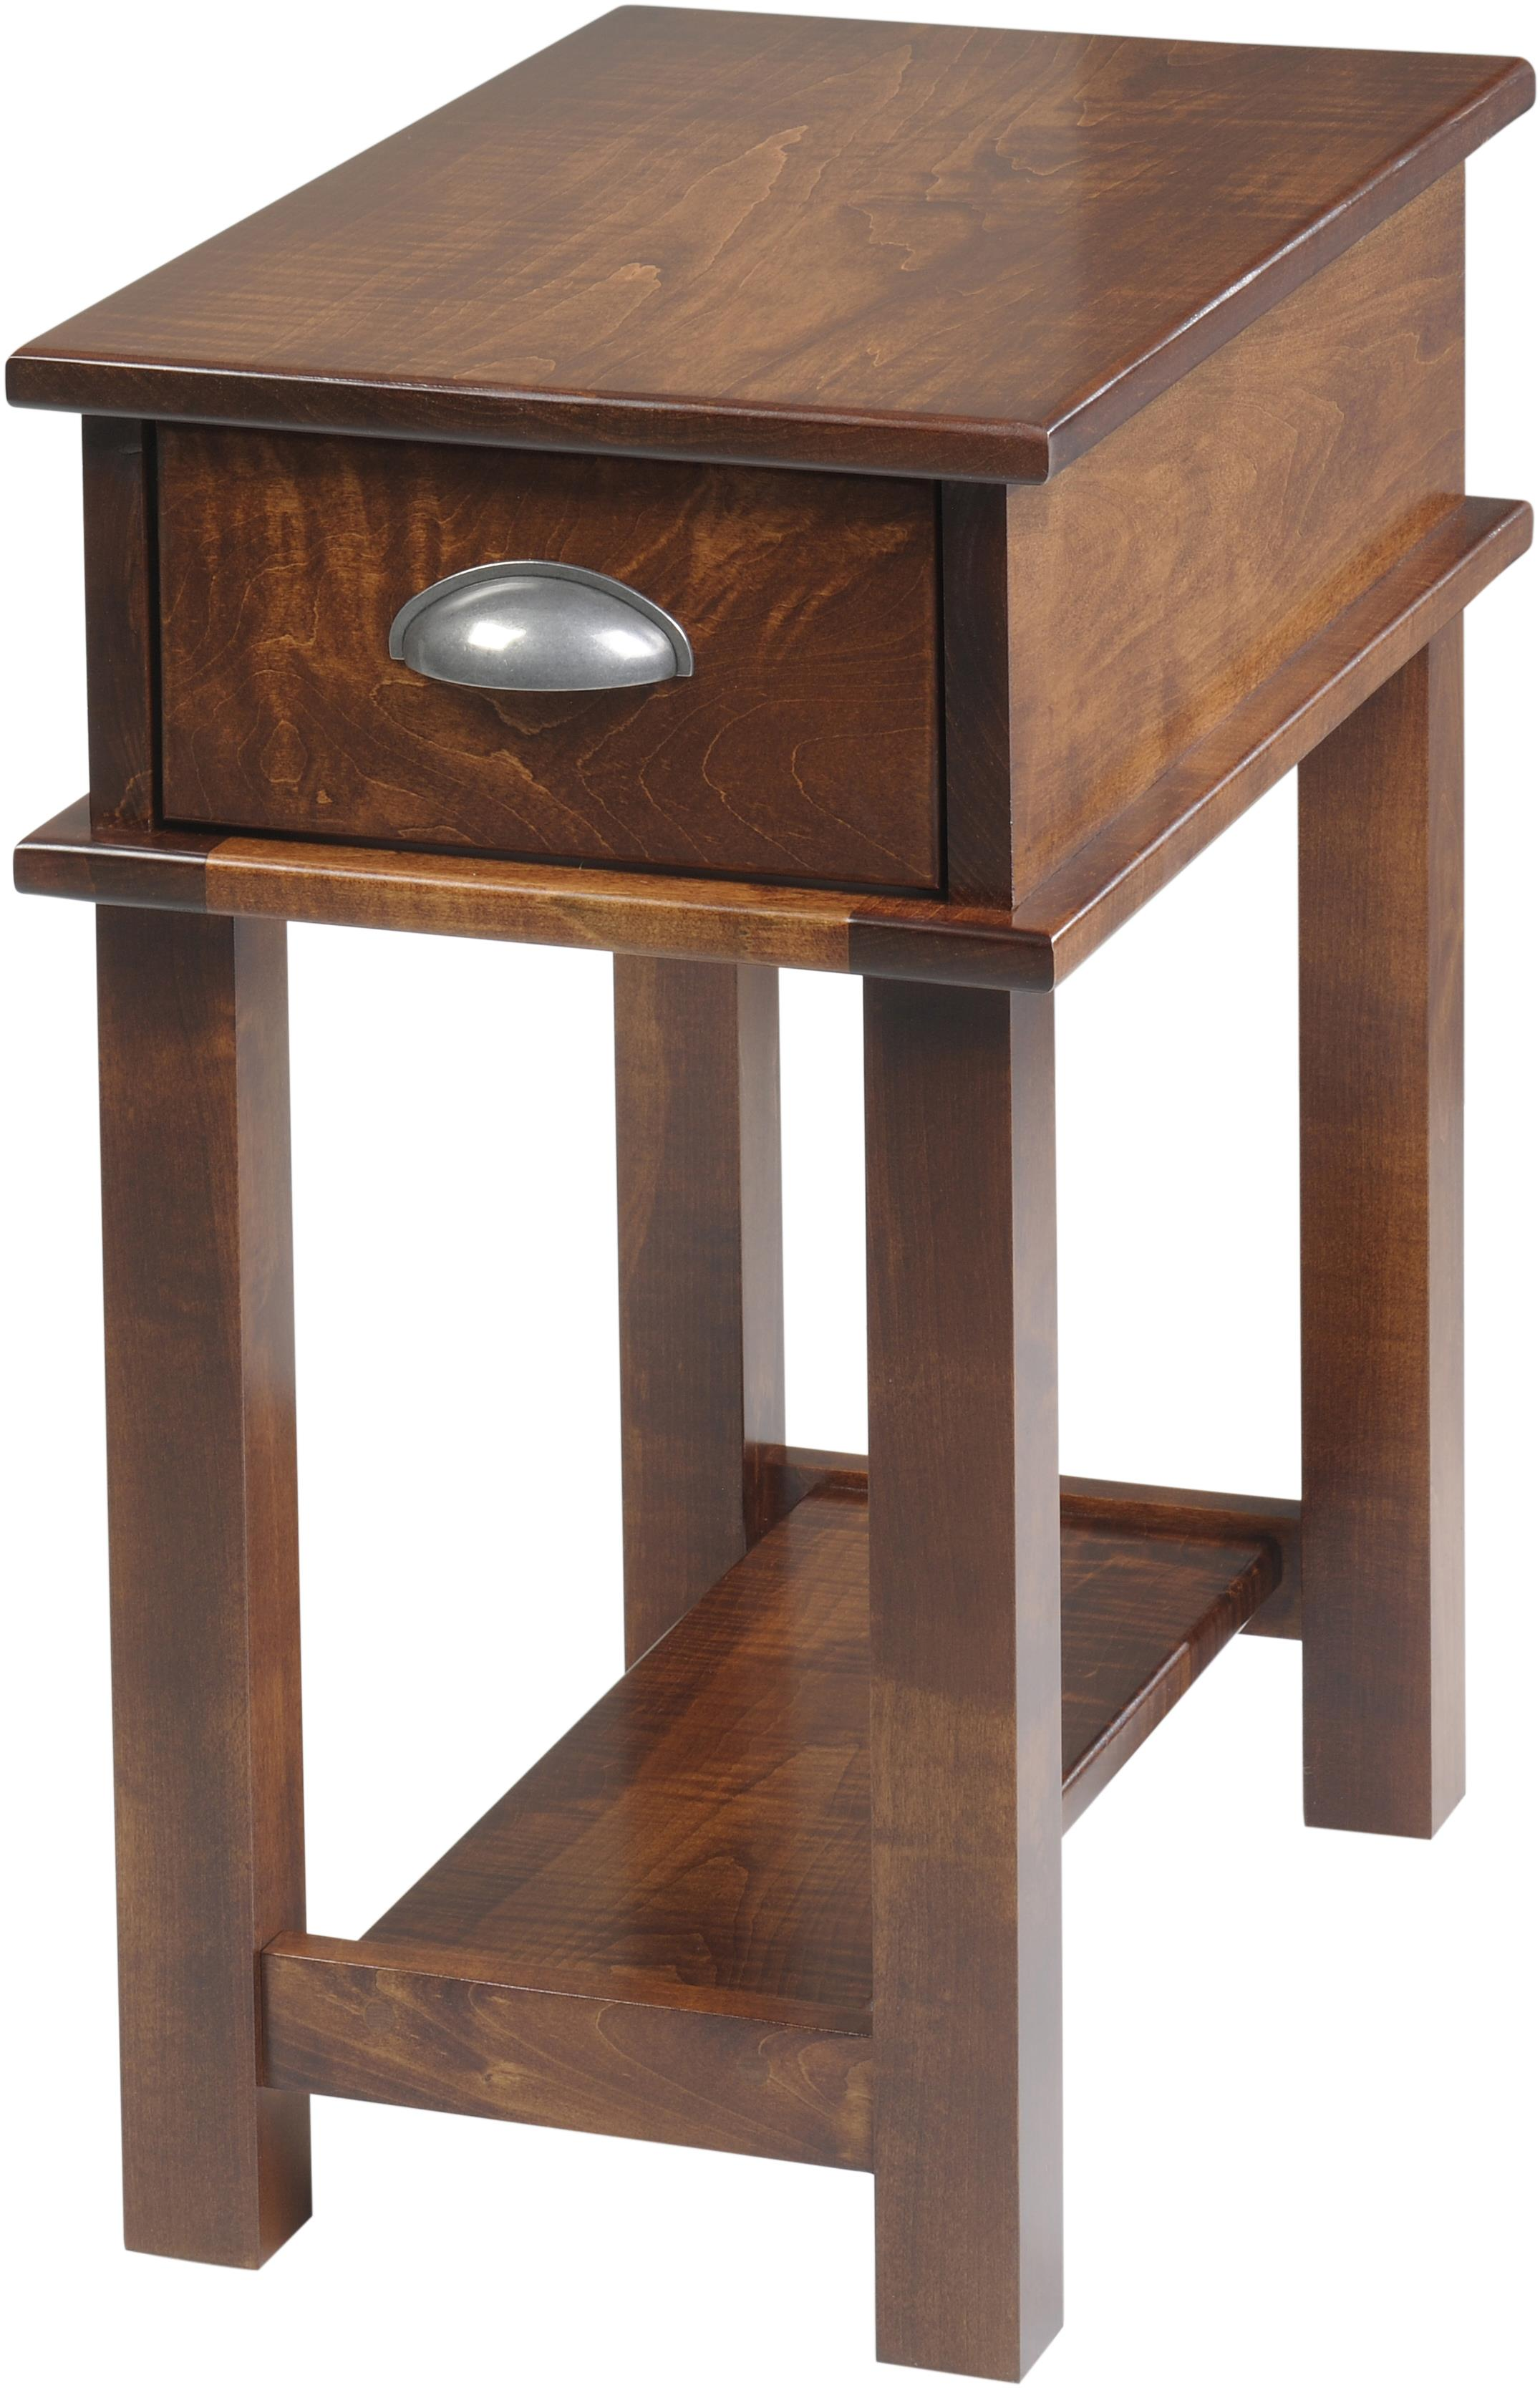 Buckhannon Chairside Table by Y & T Woodcraft at Saugerties Furniture Mart